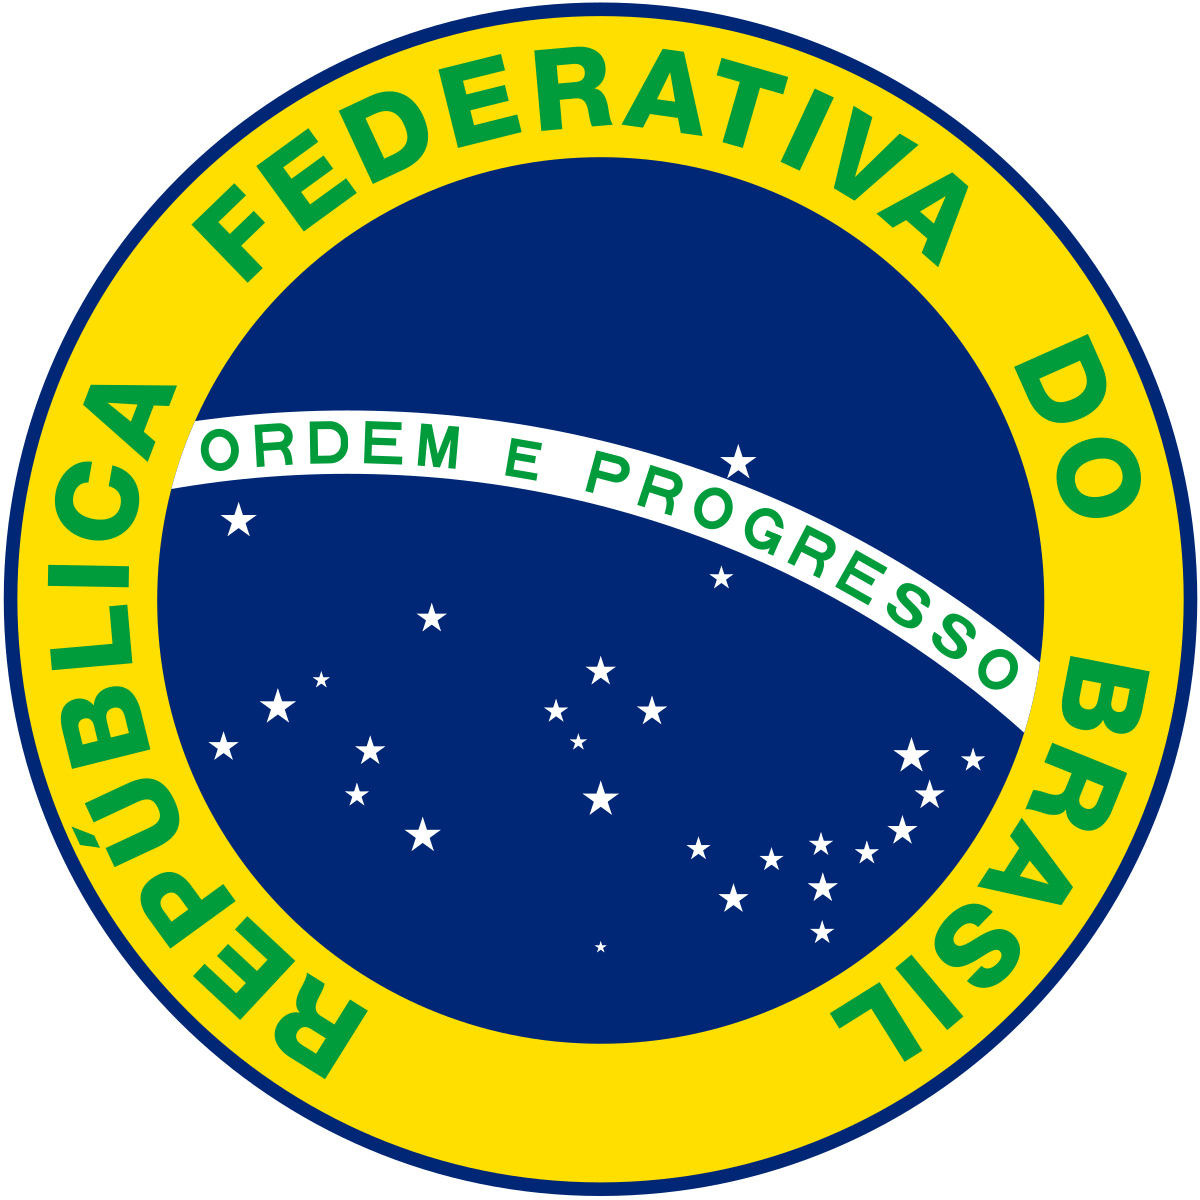 Justice clipart federal system. Government of brazil wikipedia